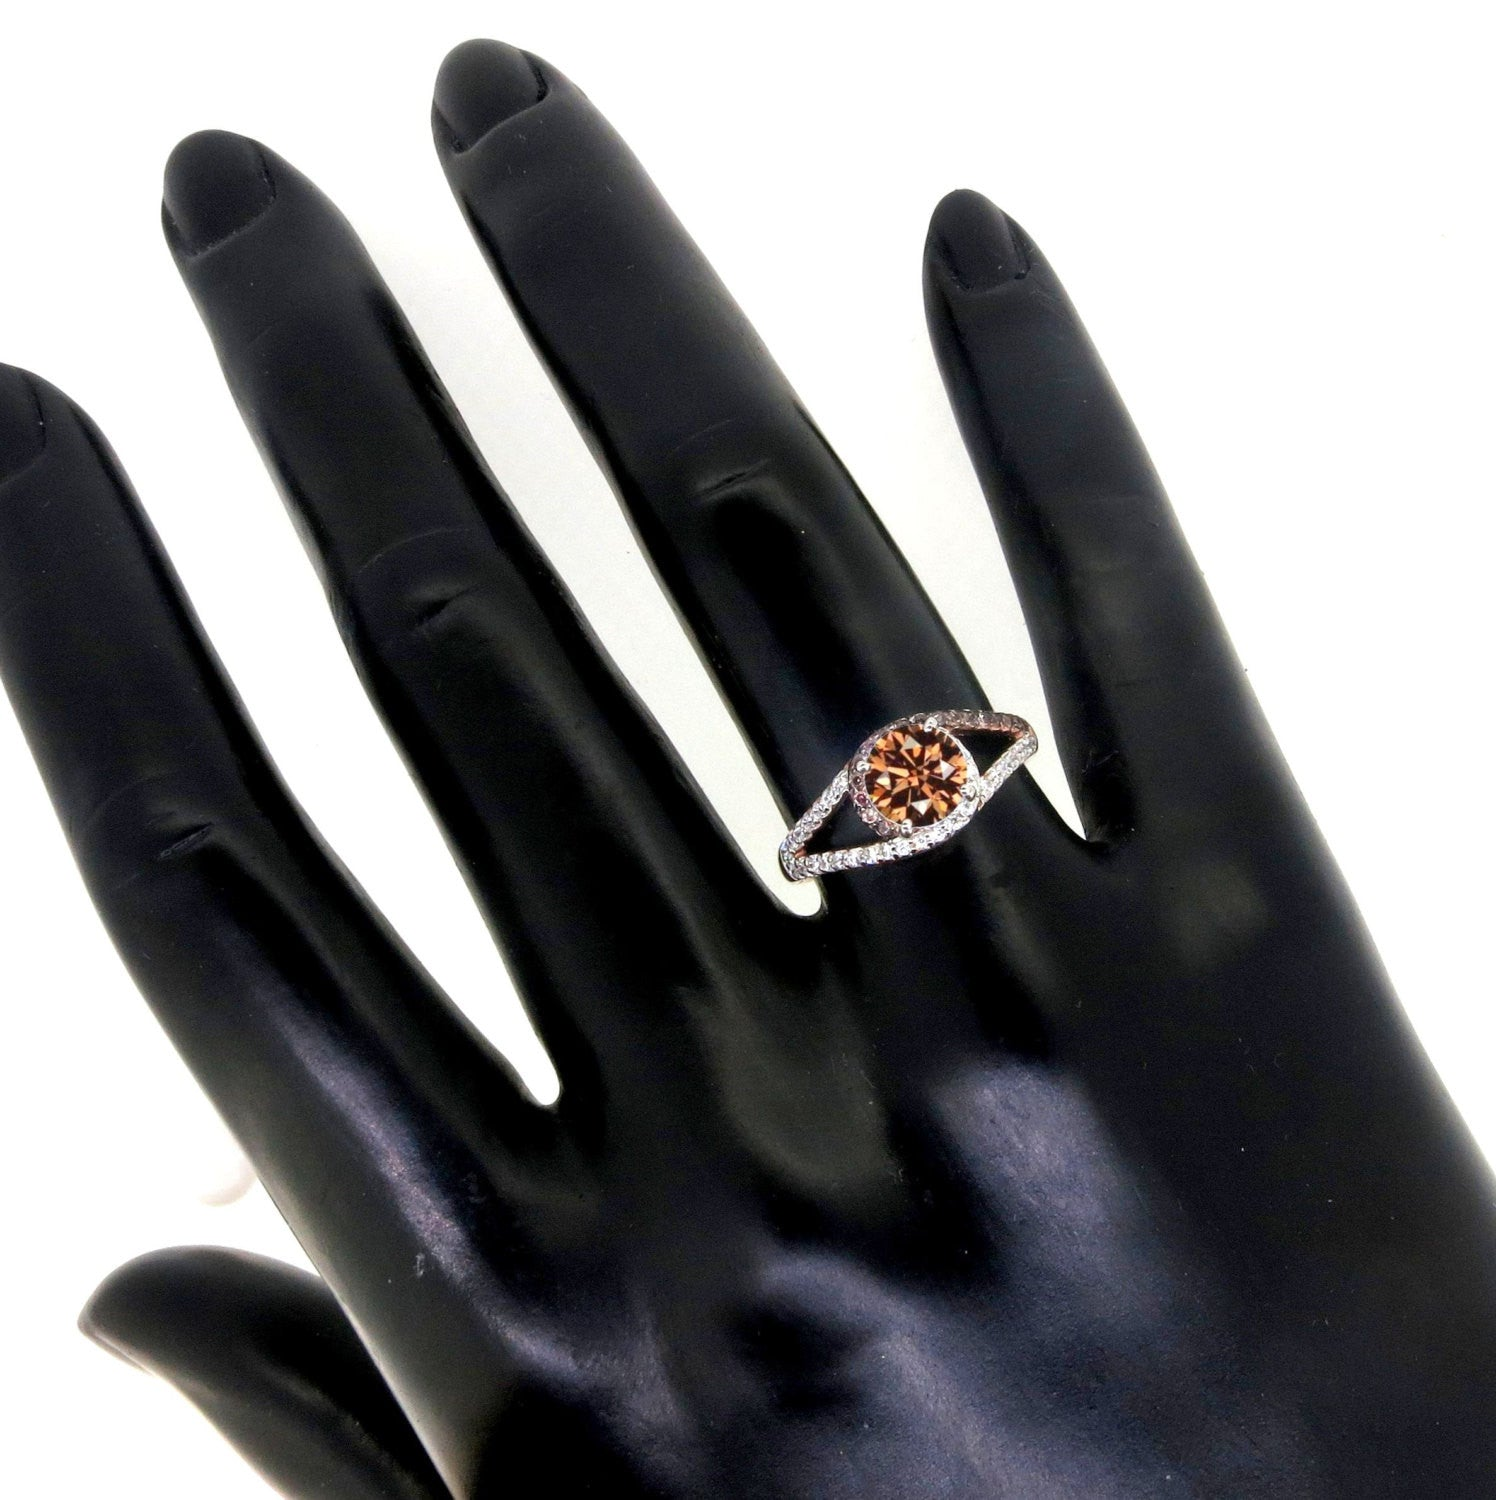 Unique 1 Carat Fancy Brown Smoky Quartz Floating Halo Rose Gold, White & Brown Diamond Engagement Ring, Split Shank, Anniversary Ring - SQ94618ER